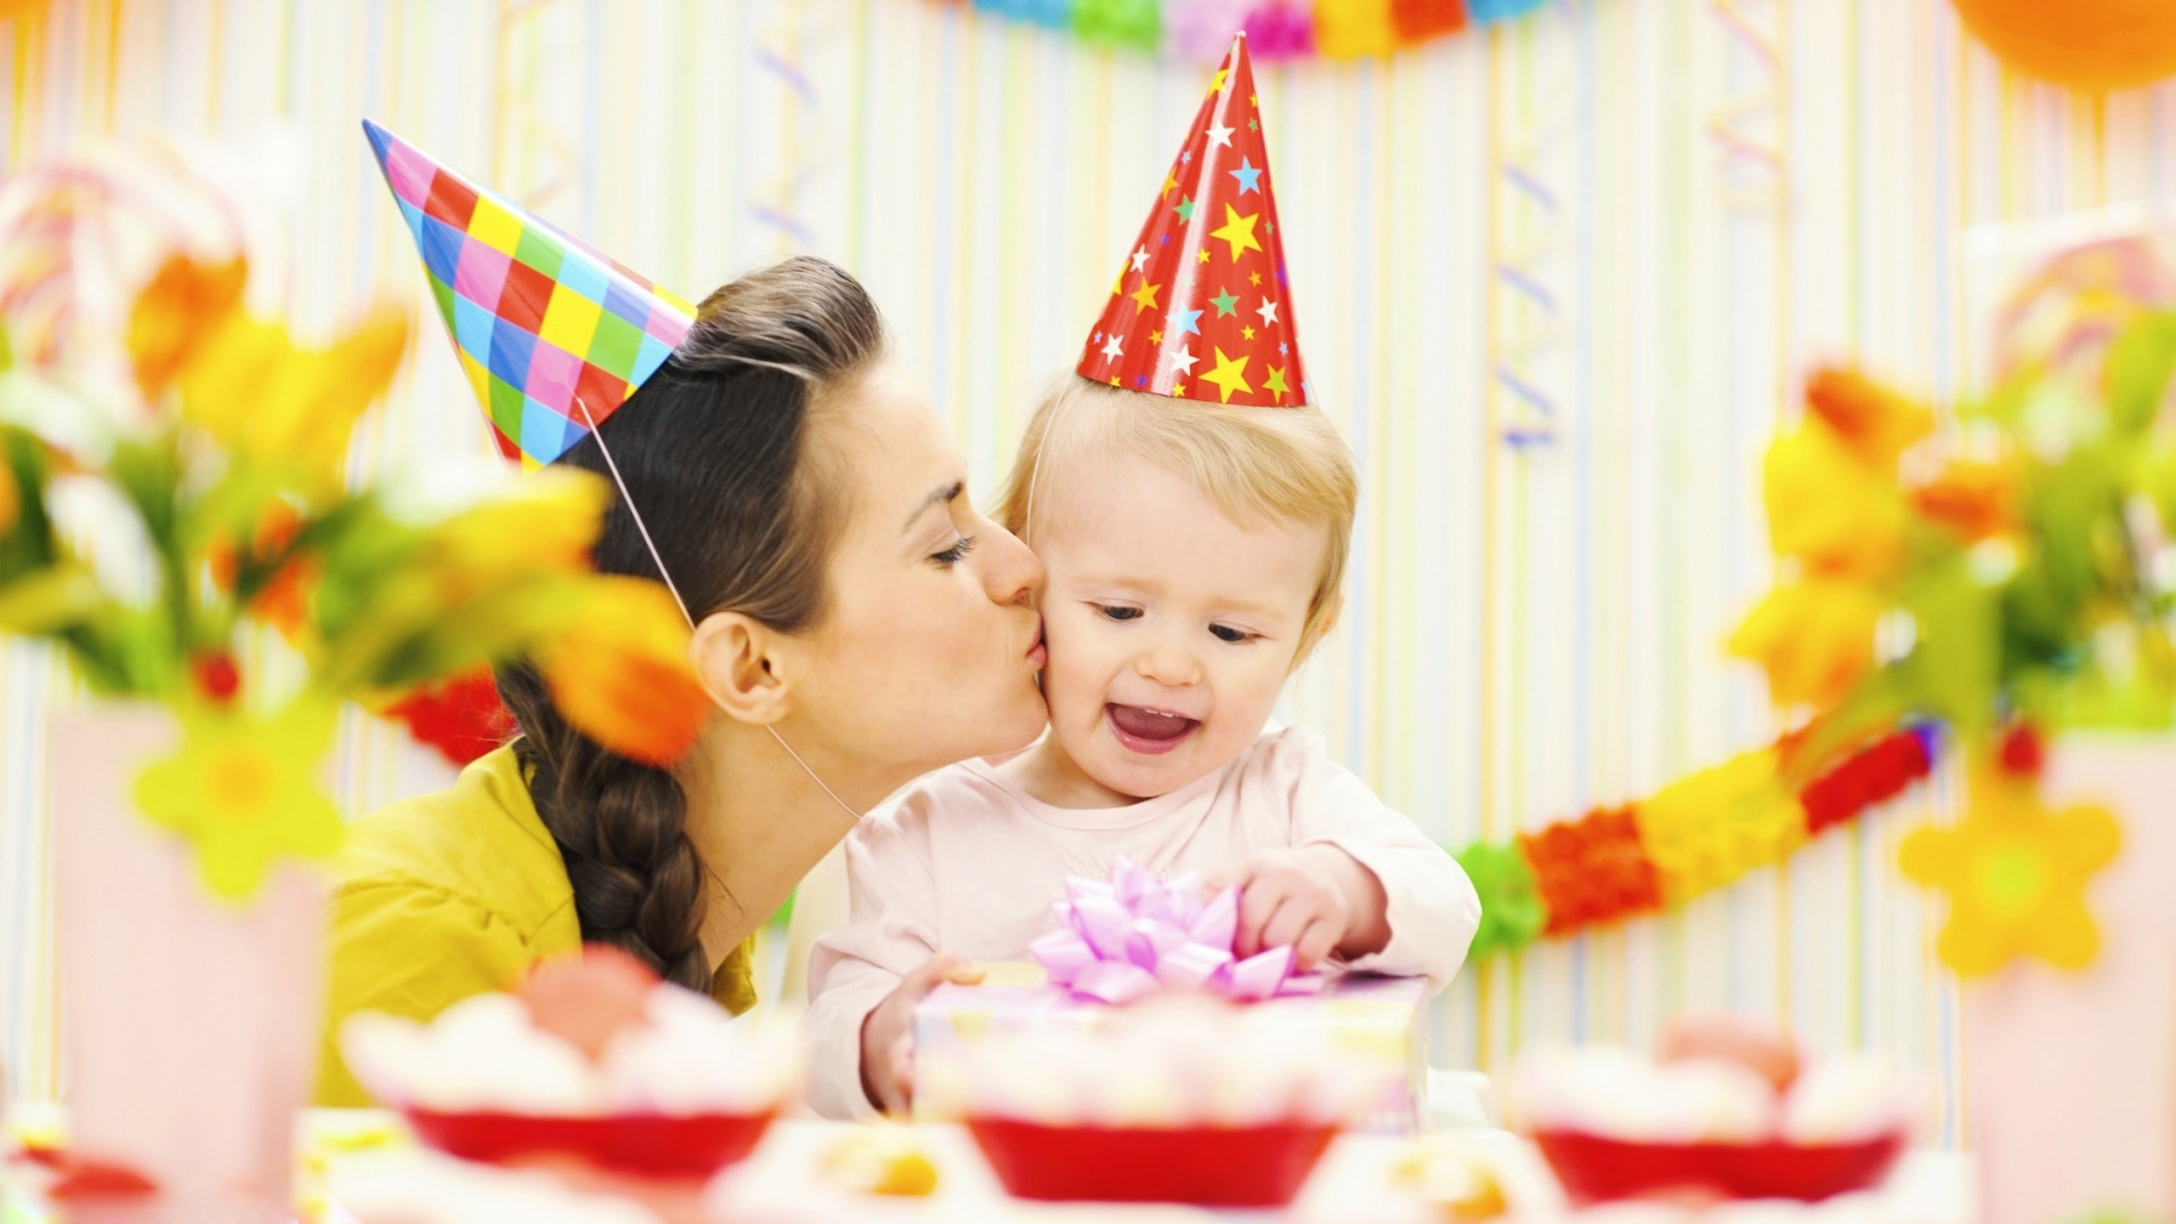 baby birthday wallpaper ; happy-birthday-celebrate-cute-baby-with-mom-full-hd-wallpapers-with-happy-birthday-wallpaper-with-cute-baby